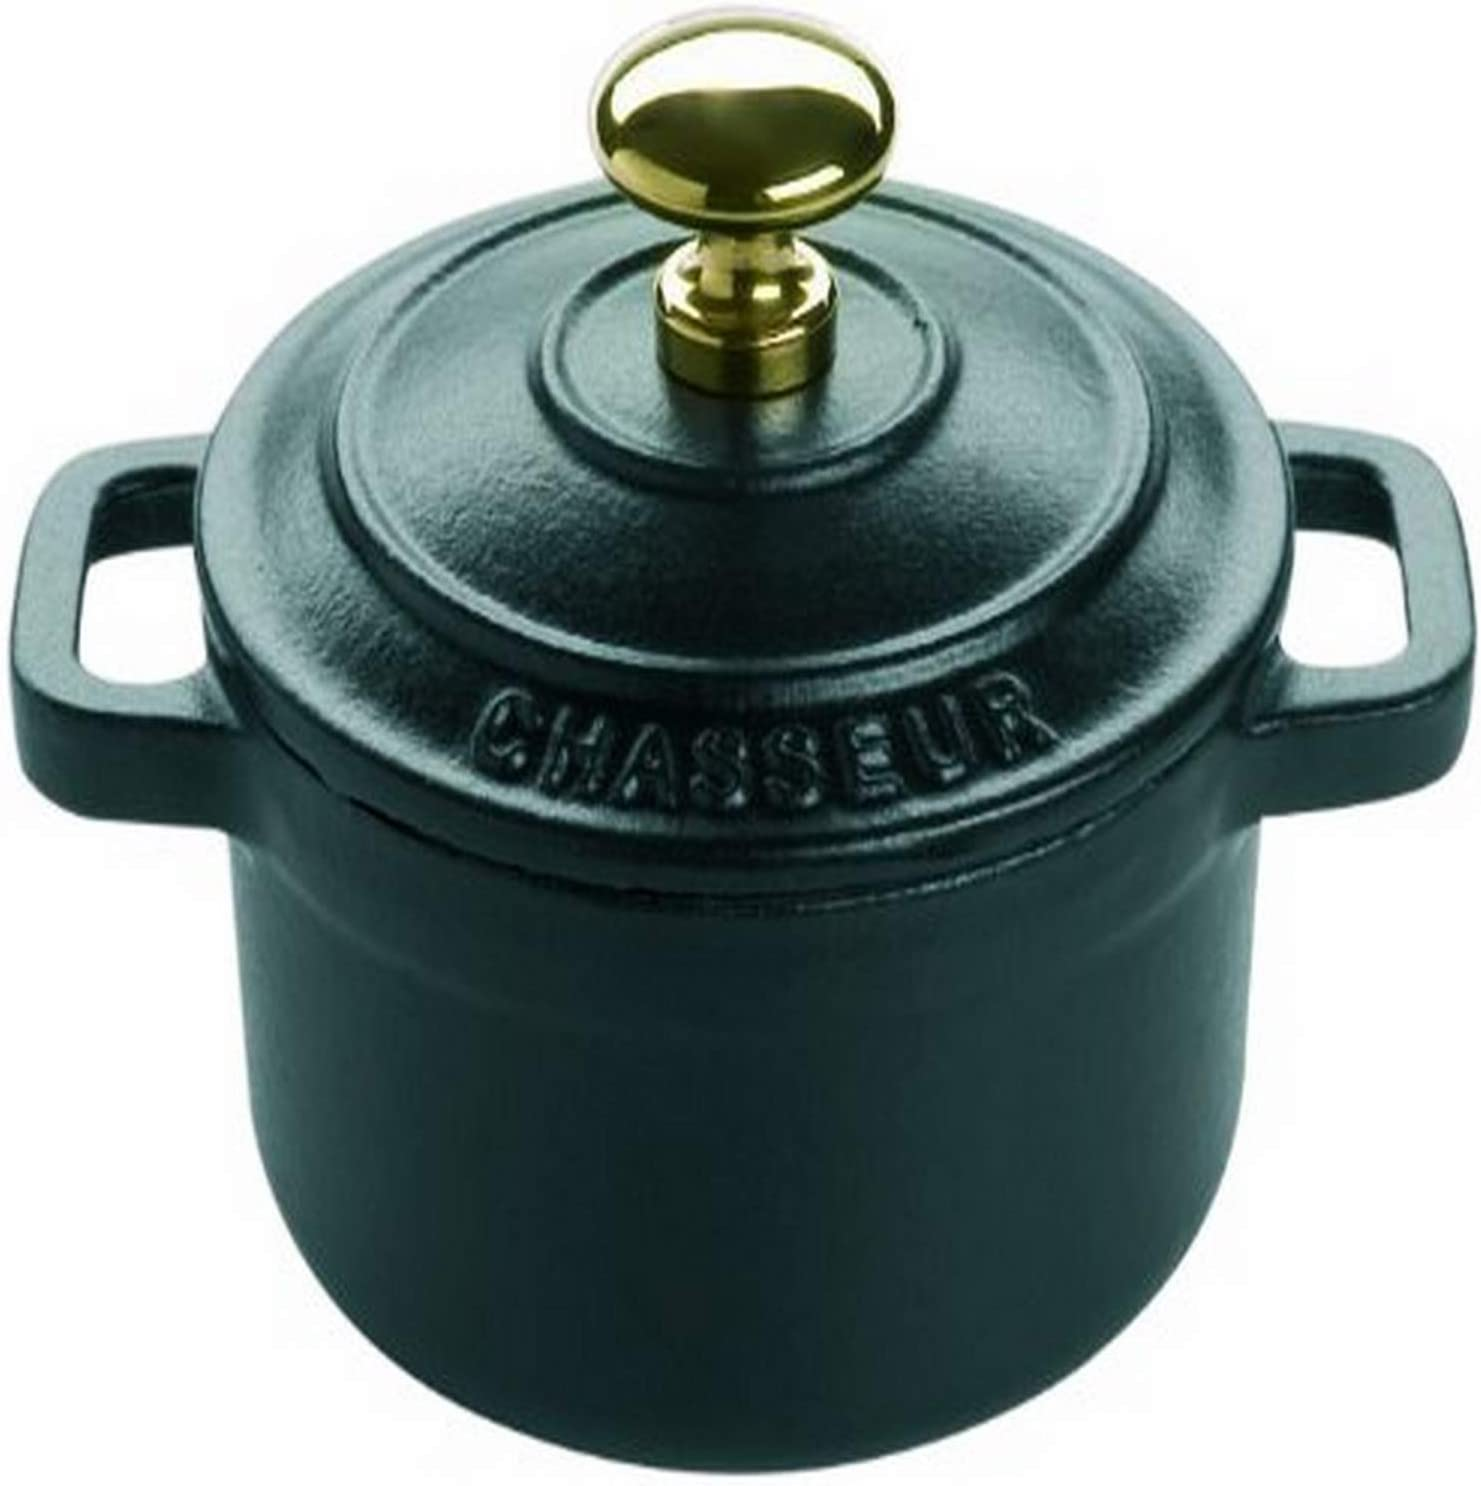 Le Chasseur 071098 Enameled Cast Iron Round Casserole Pot with Lid, Black